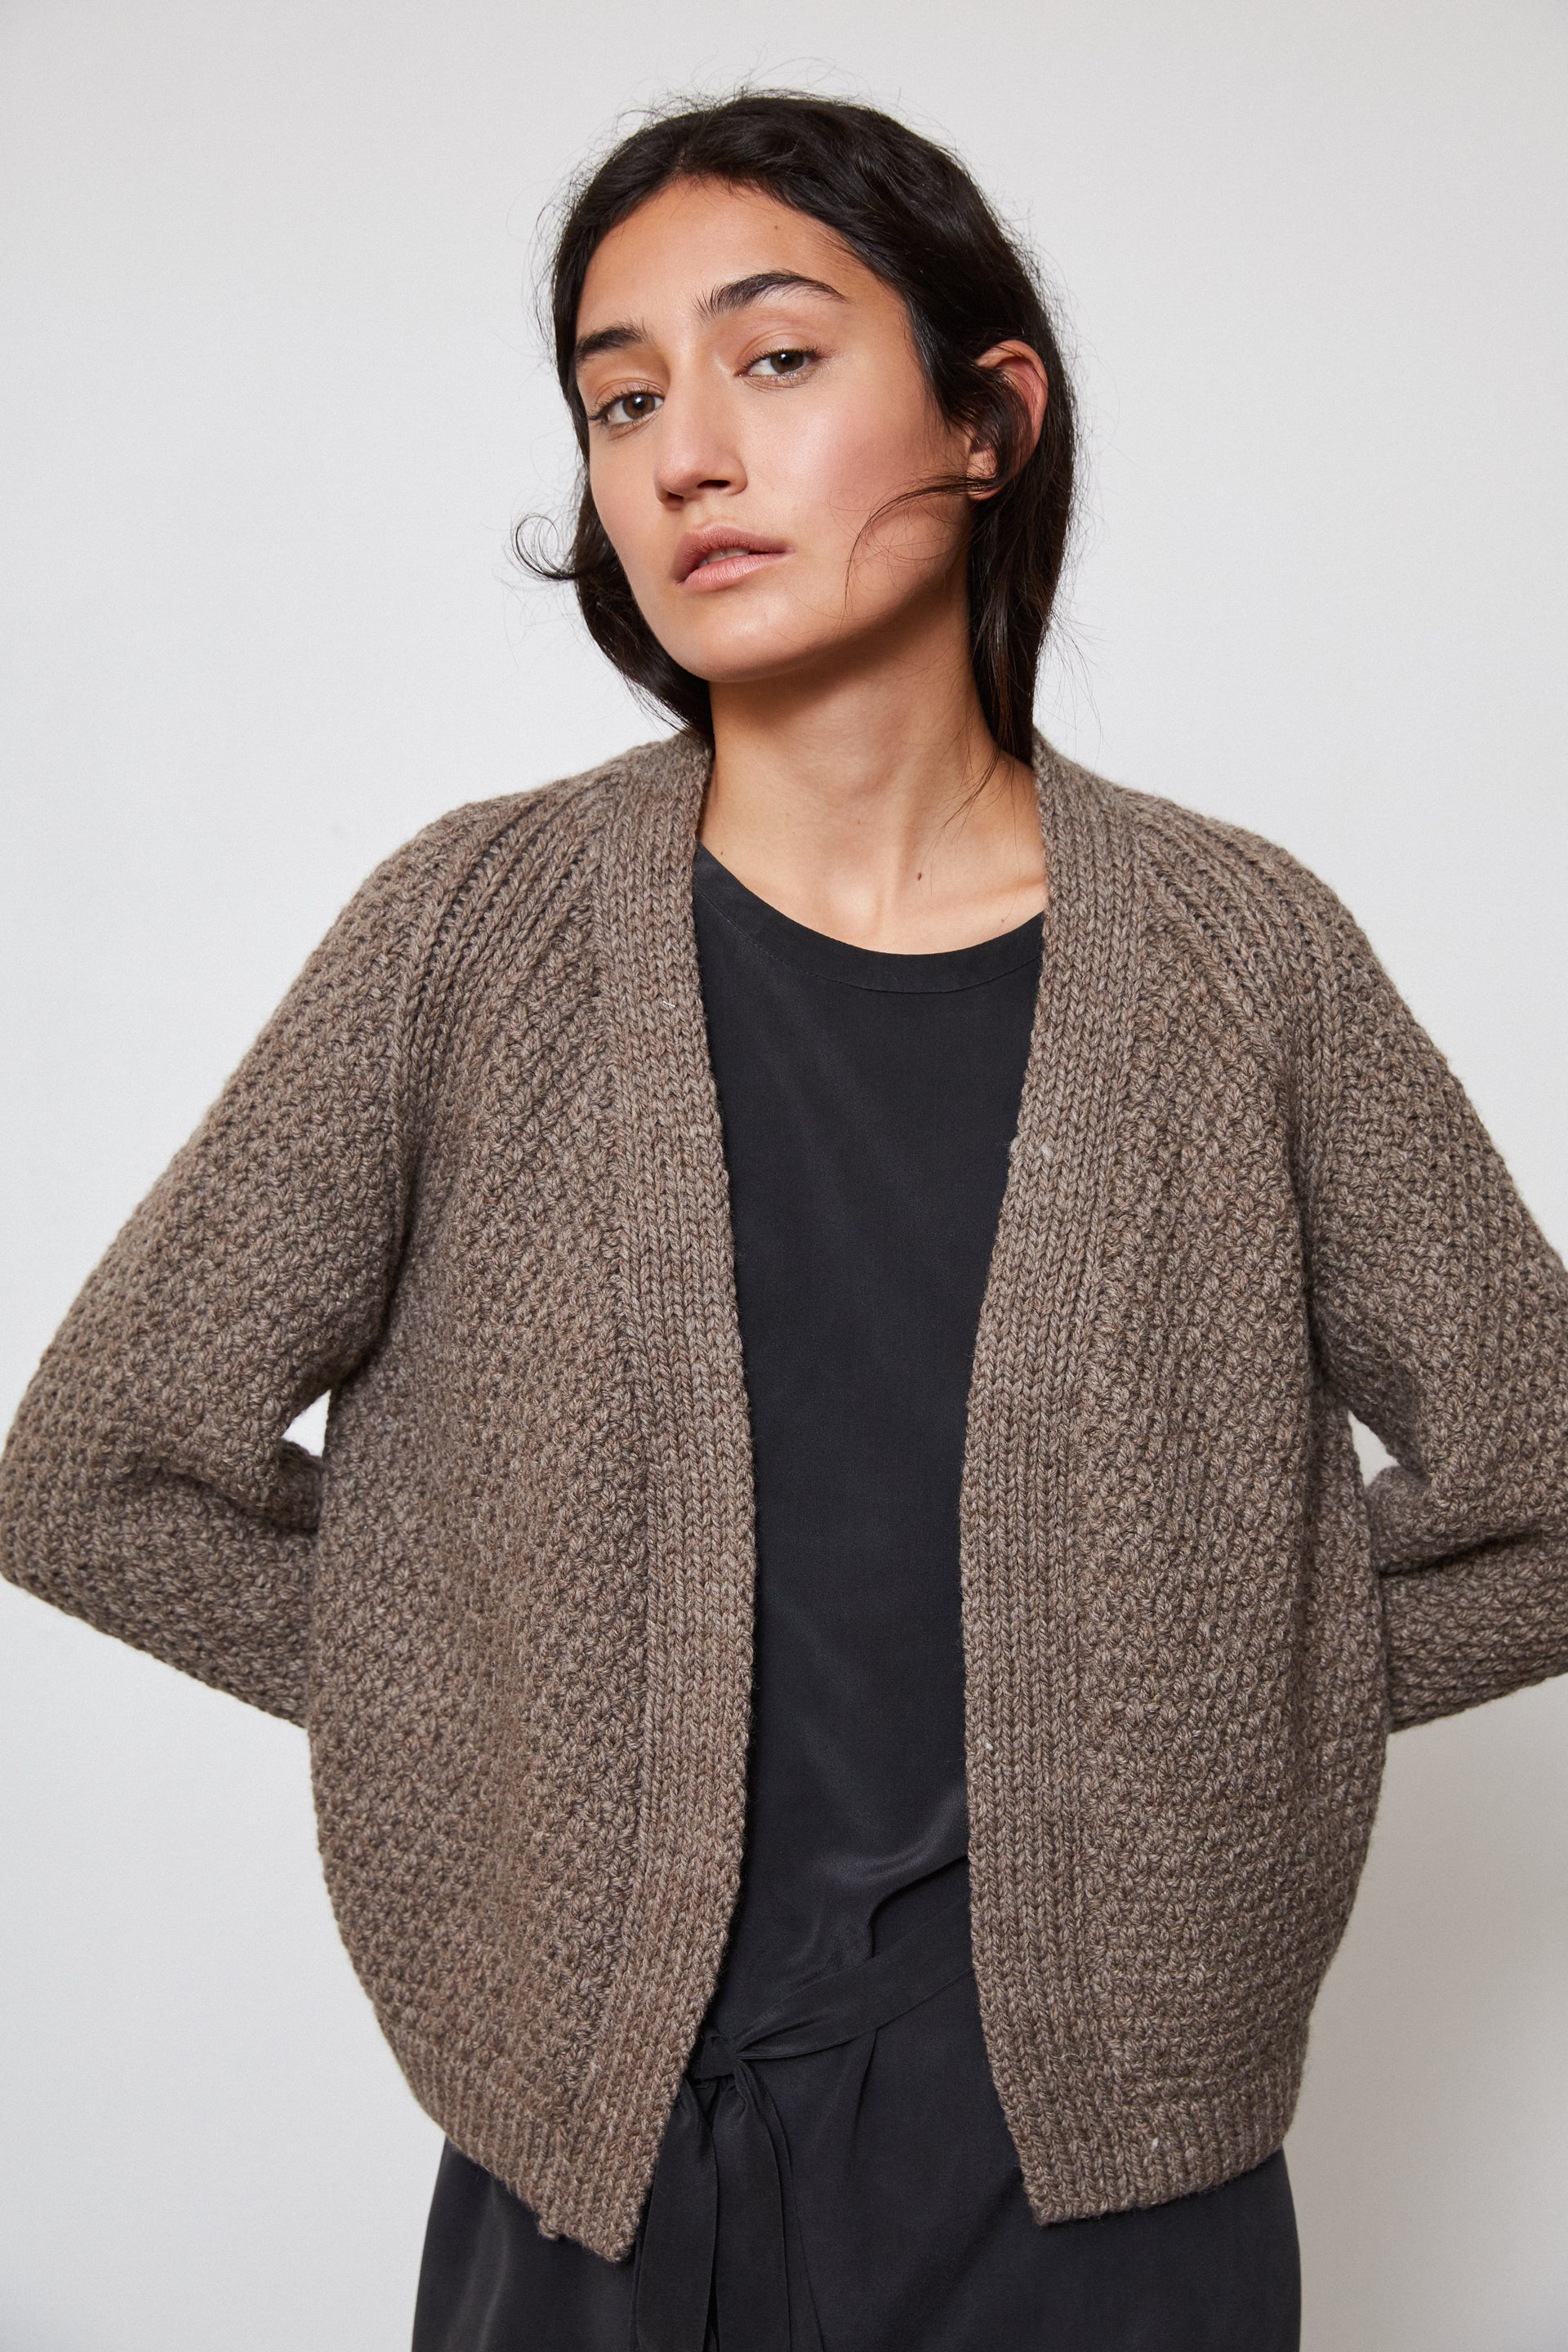 HAND KNITTED SAUCO WOOL CARDIGAN - CUB